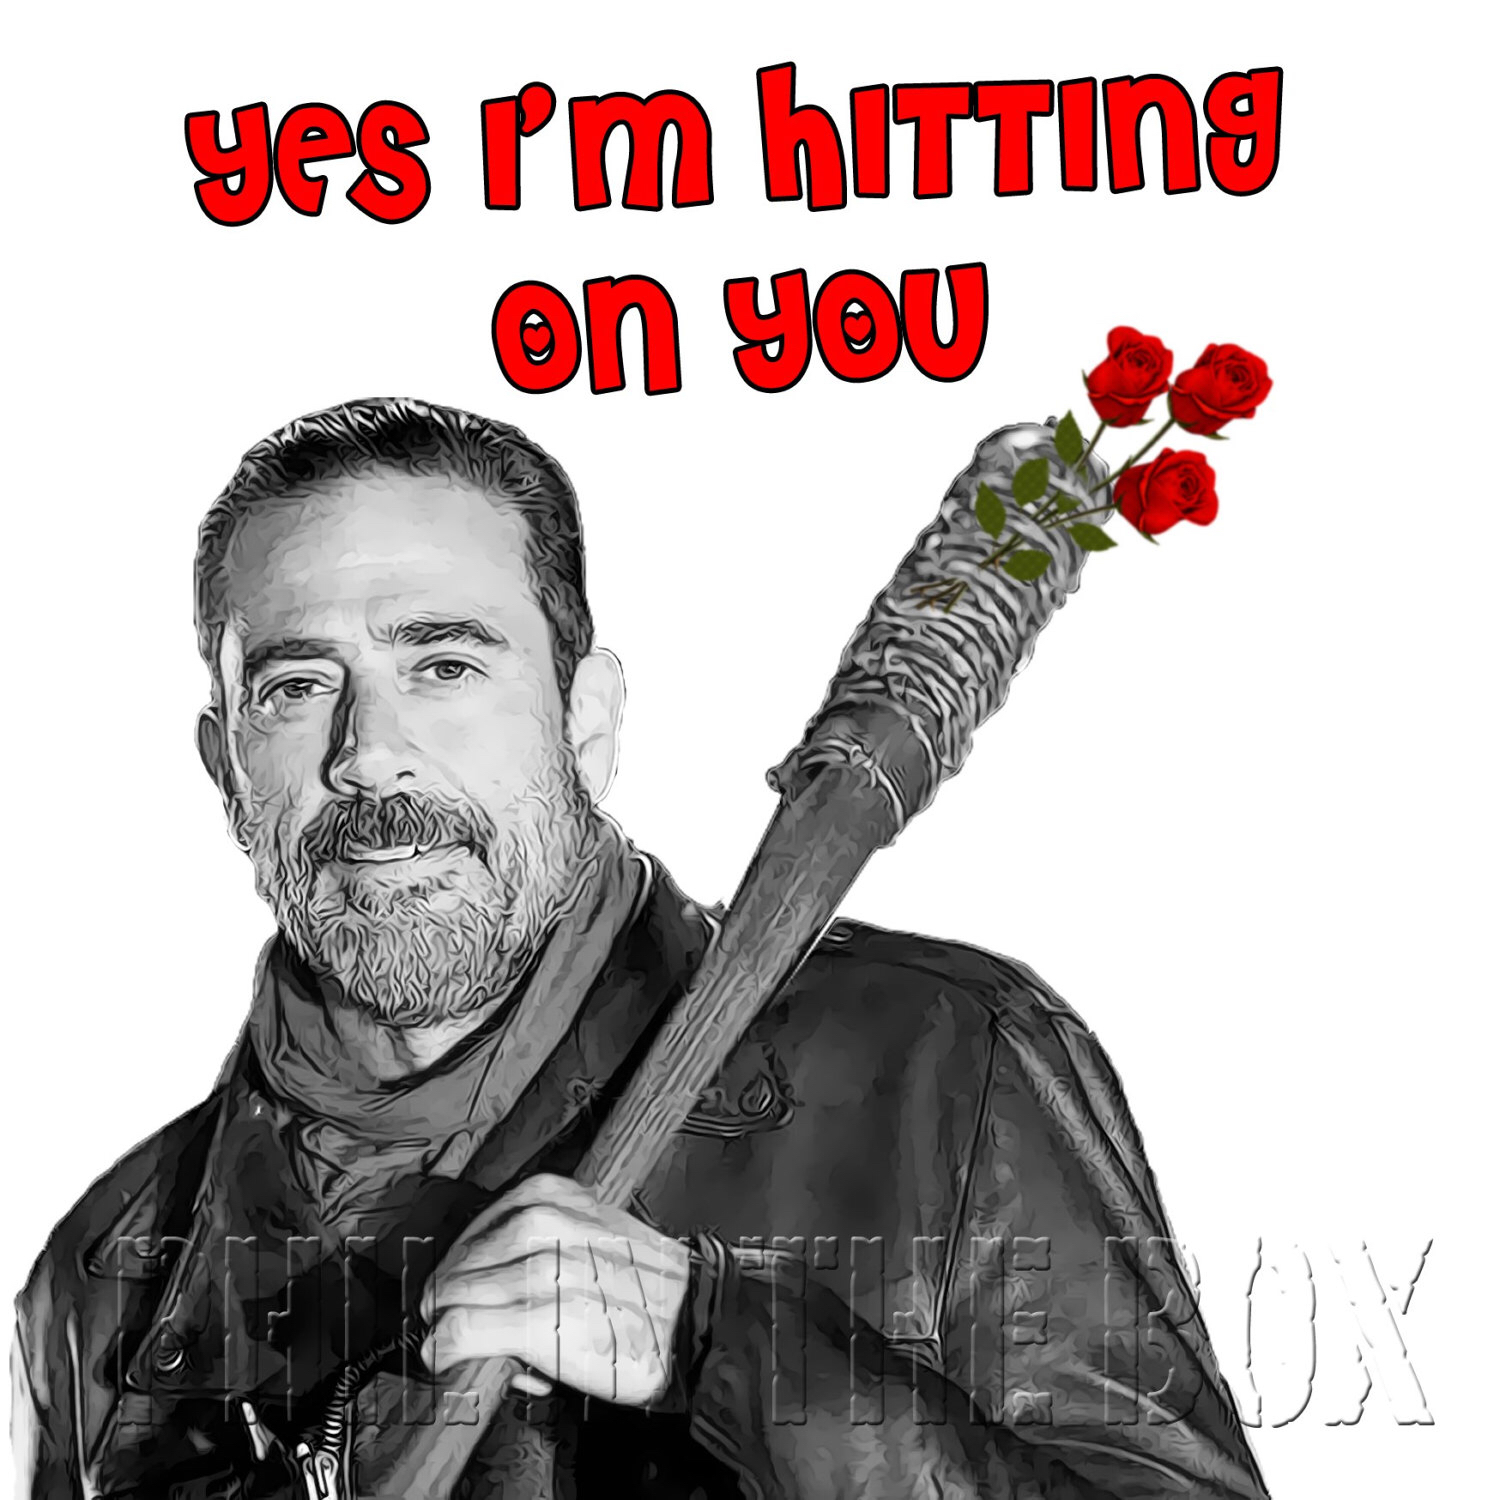 negan happy birthday ; c1ce2d3f6fc4a2ffb0a2db80e3c002e5